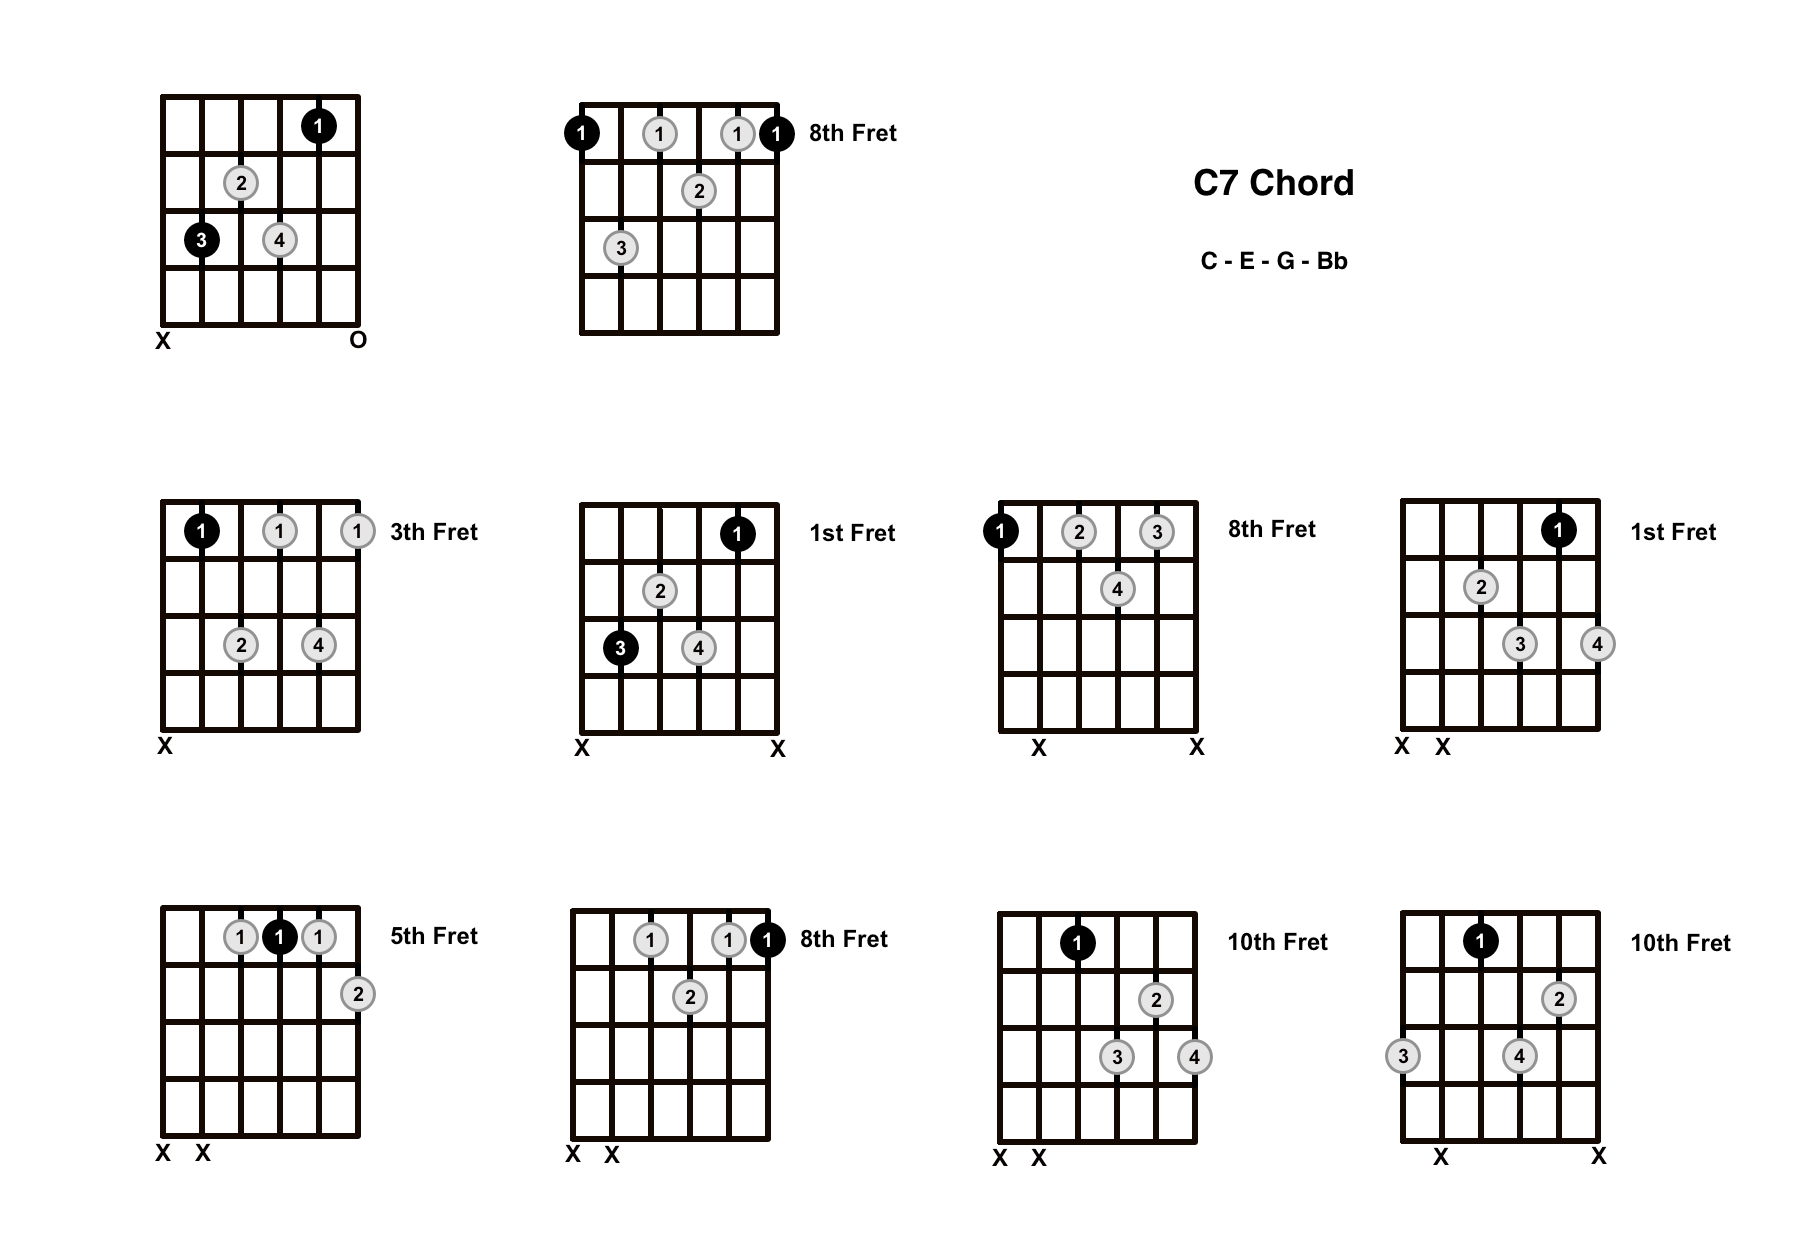 C7 Chord On The Guitar (C Dominant 7) – Diagrams, Finger Positions and Theory